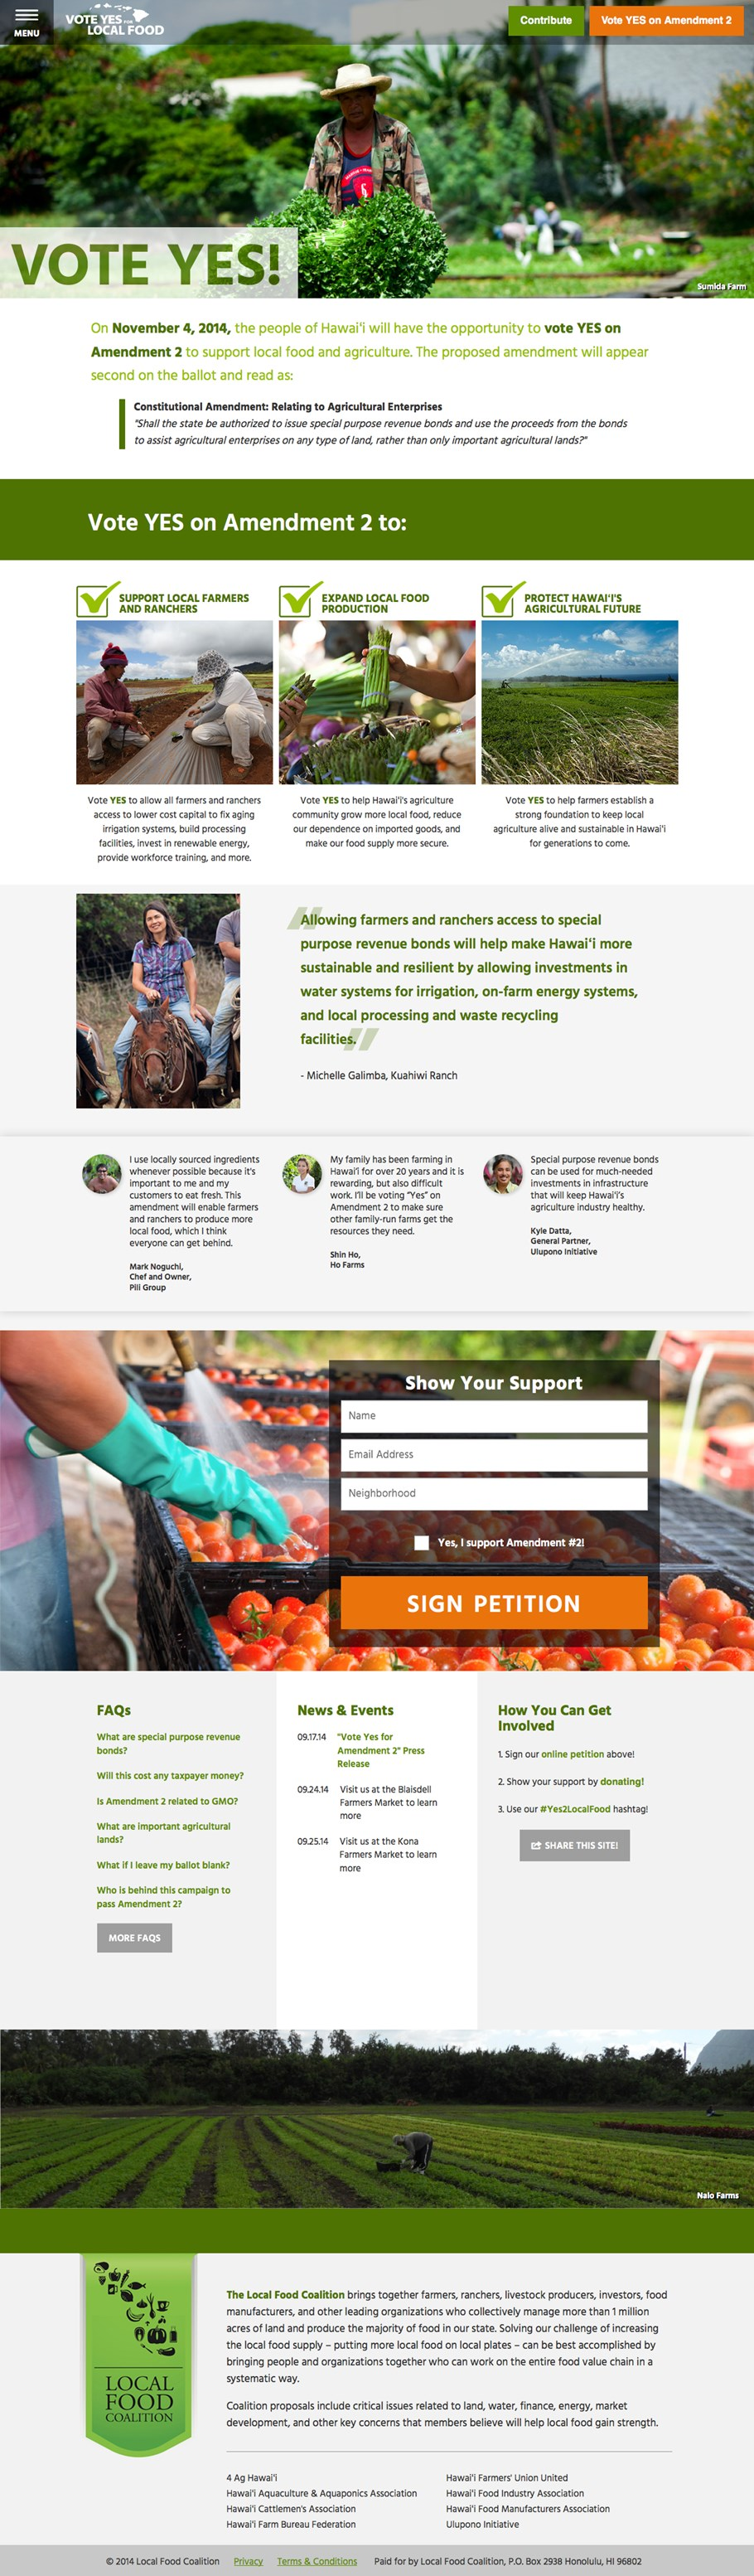 Yes2localfood website